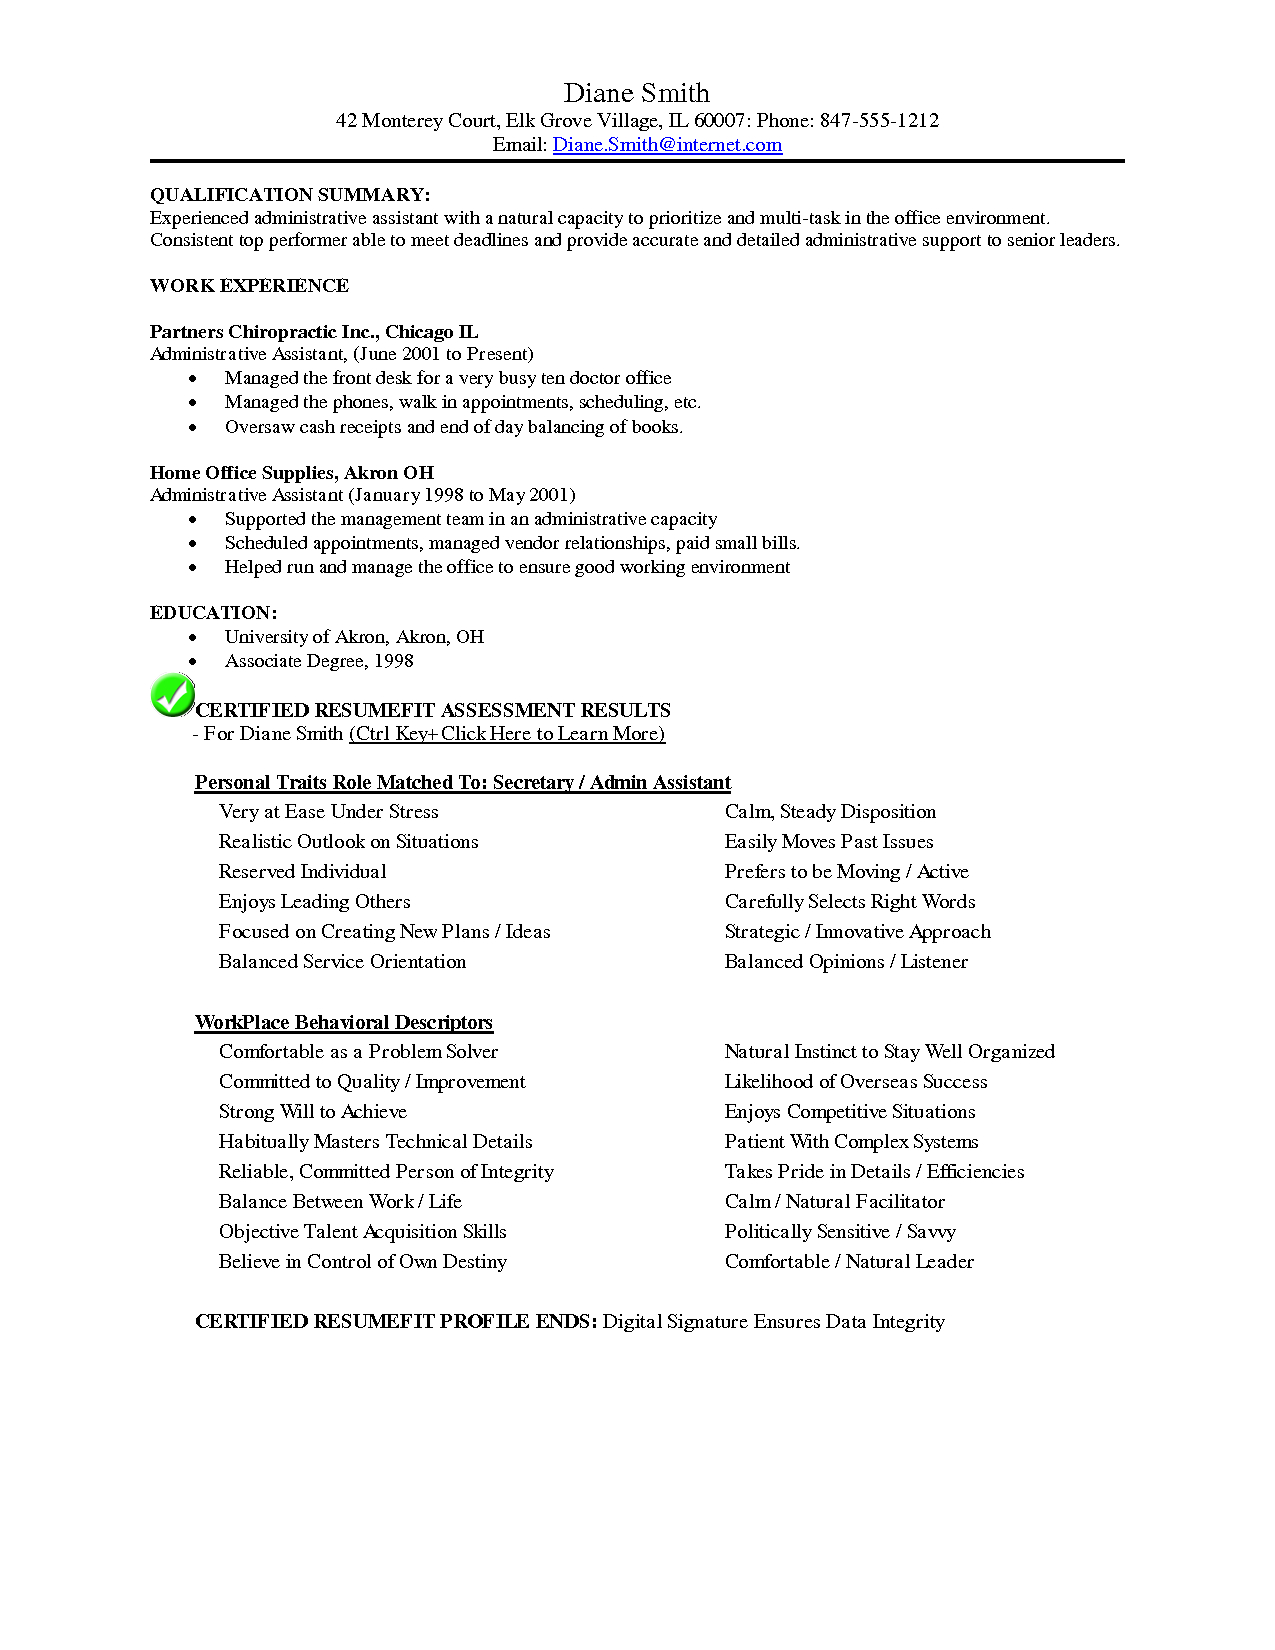 Medical Office Manager Resume Sample - Chiropractic Resume Example Resumes Pinterest